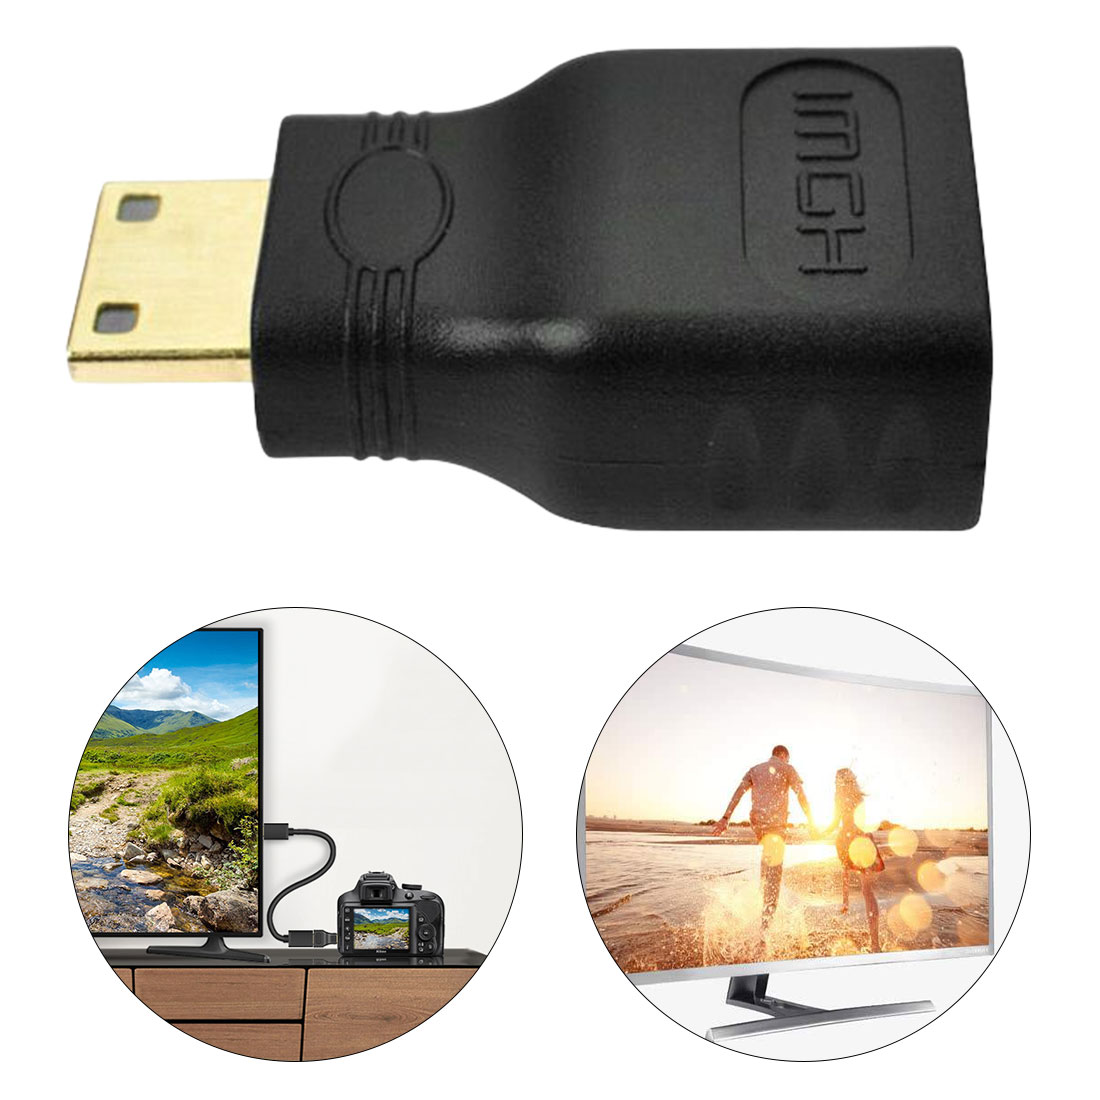 Male Type C To Female Type A Adapter Plug For 1080p 3D HDMI Connector TV USB Charger USB Adapter